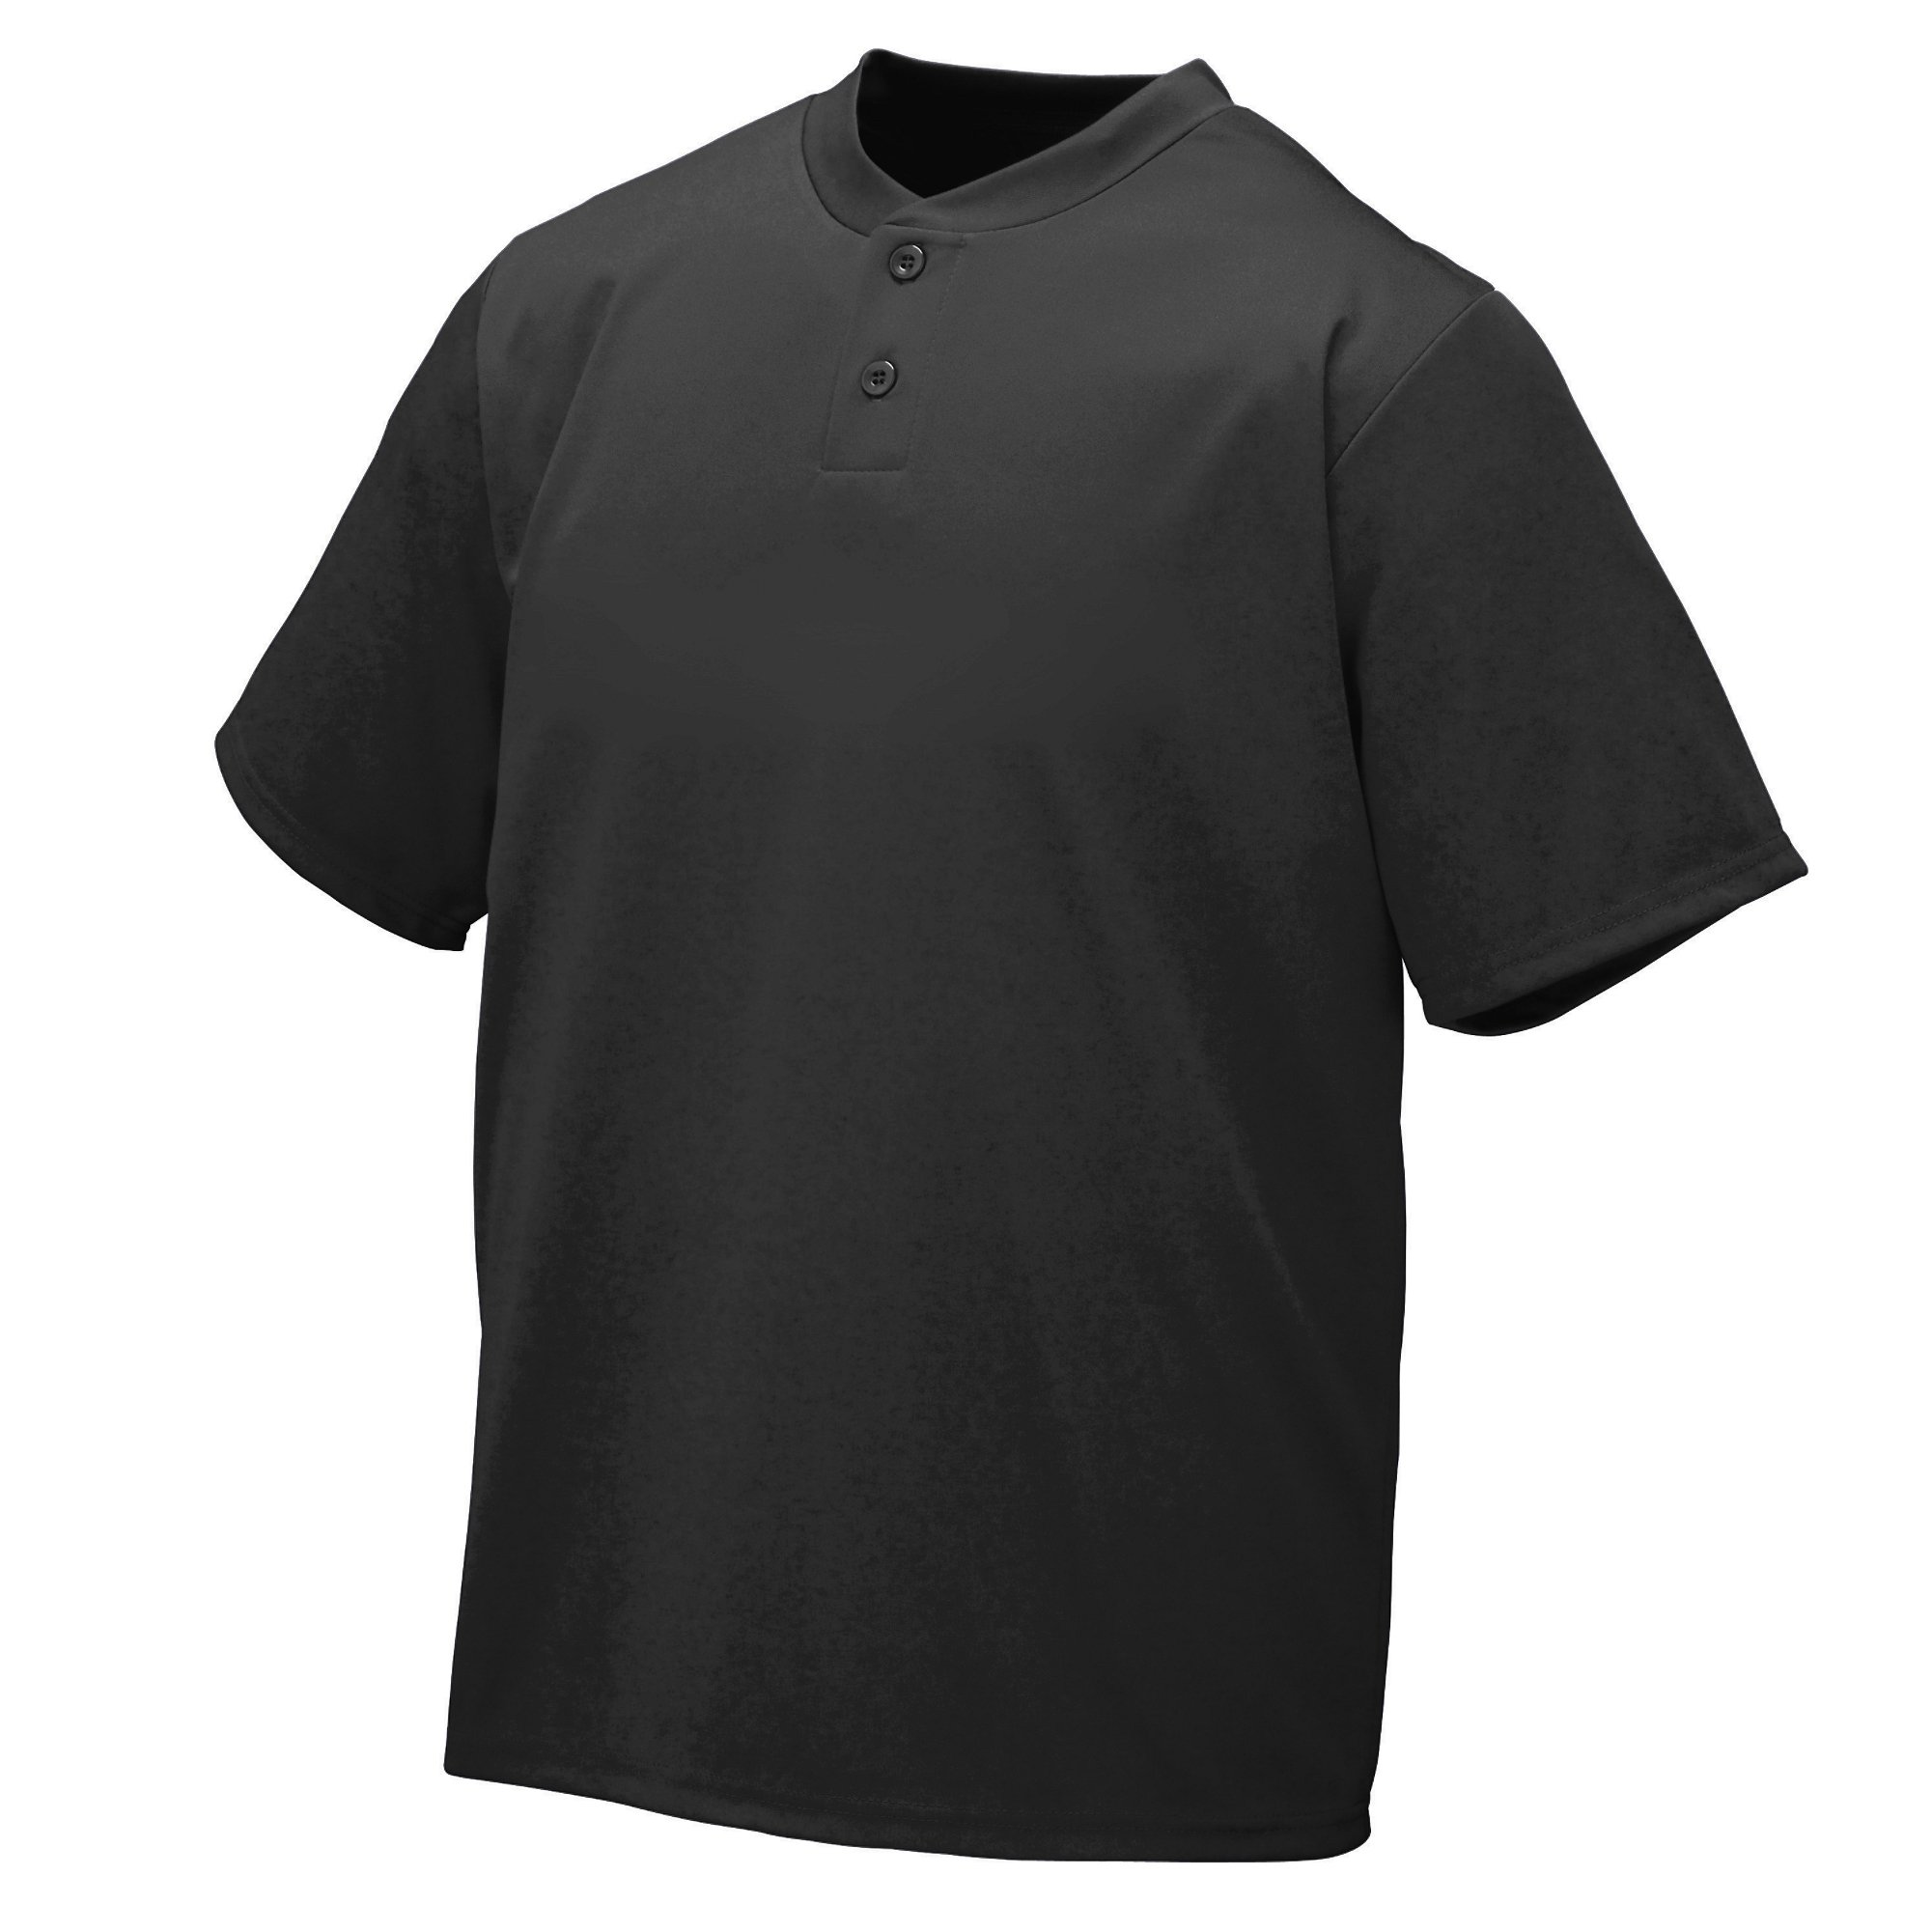 Augusta Sportswear Wicking Two-Button Jersey 3XL Black by Augusta Sportswear